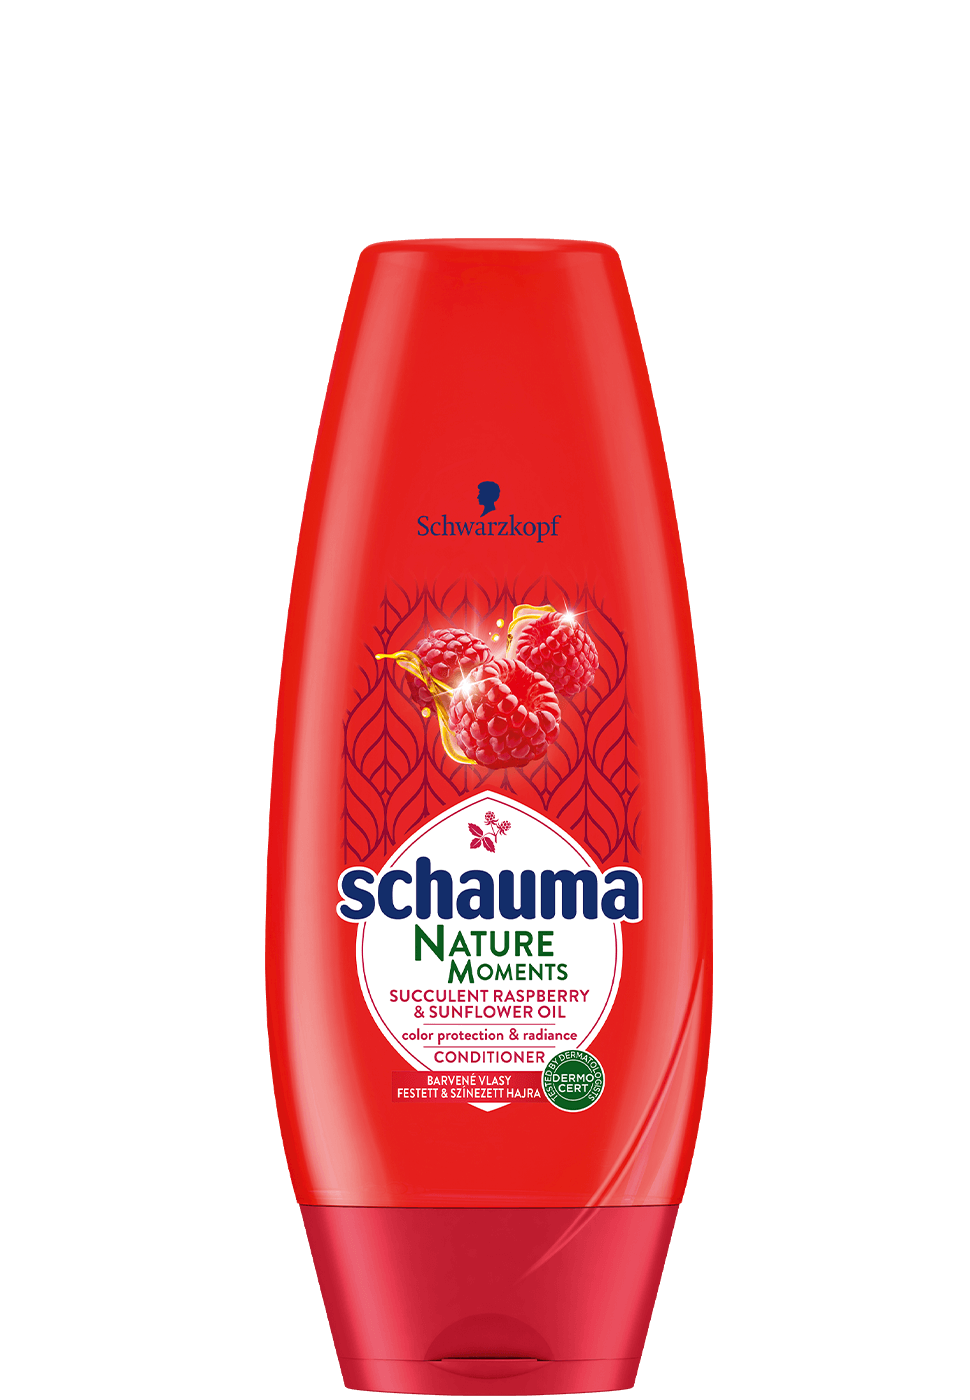 schauma_com_nature_moments_succulent_raspberry_conditioner_970x1400